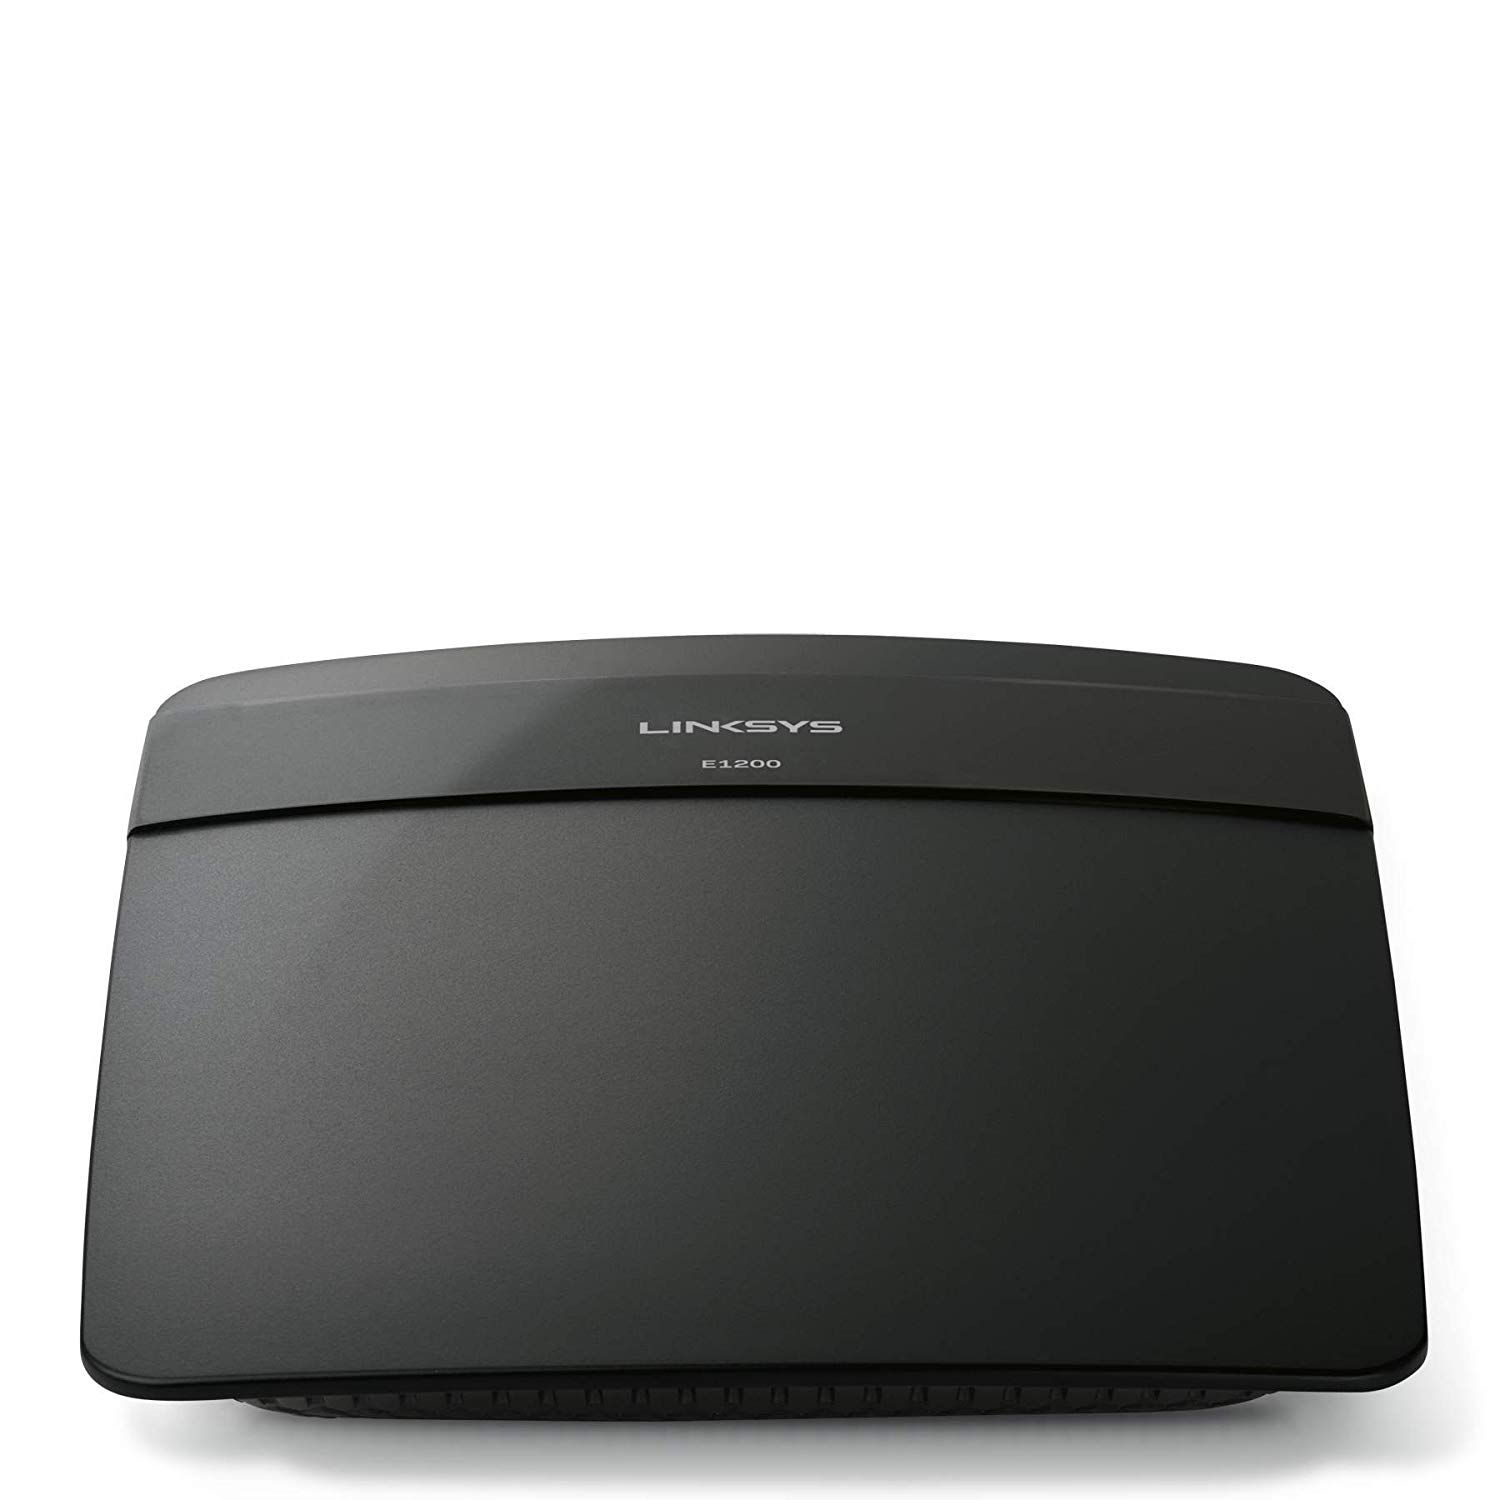 The Linksys N300 (E1200)